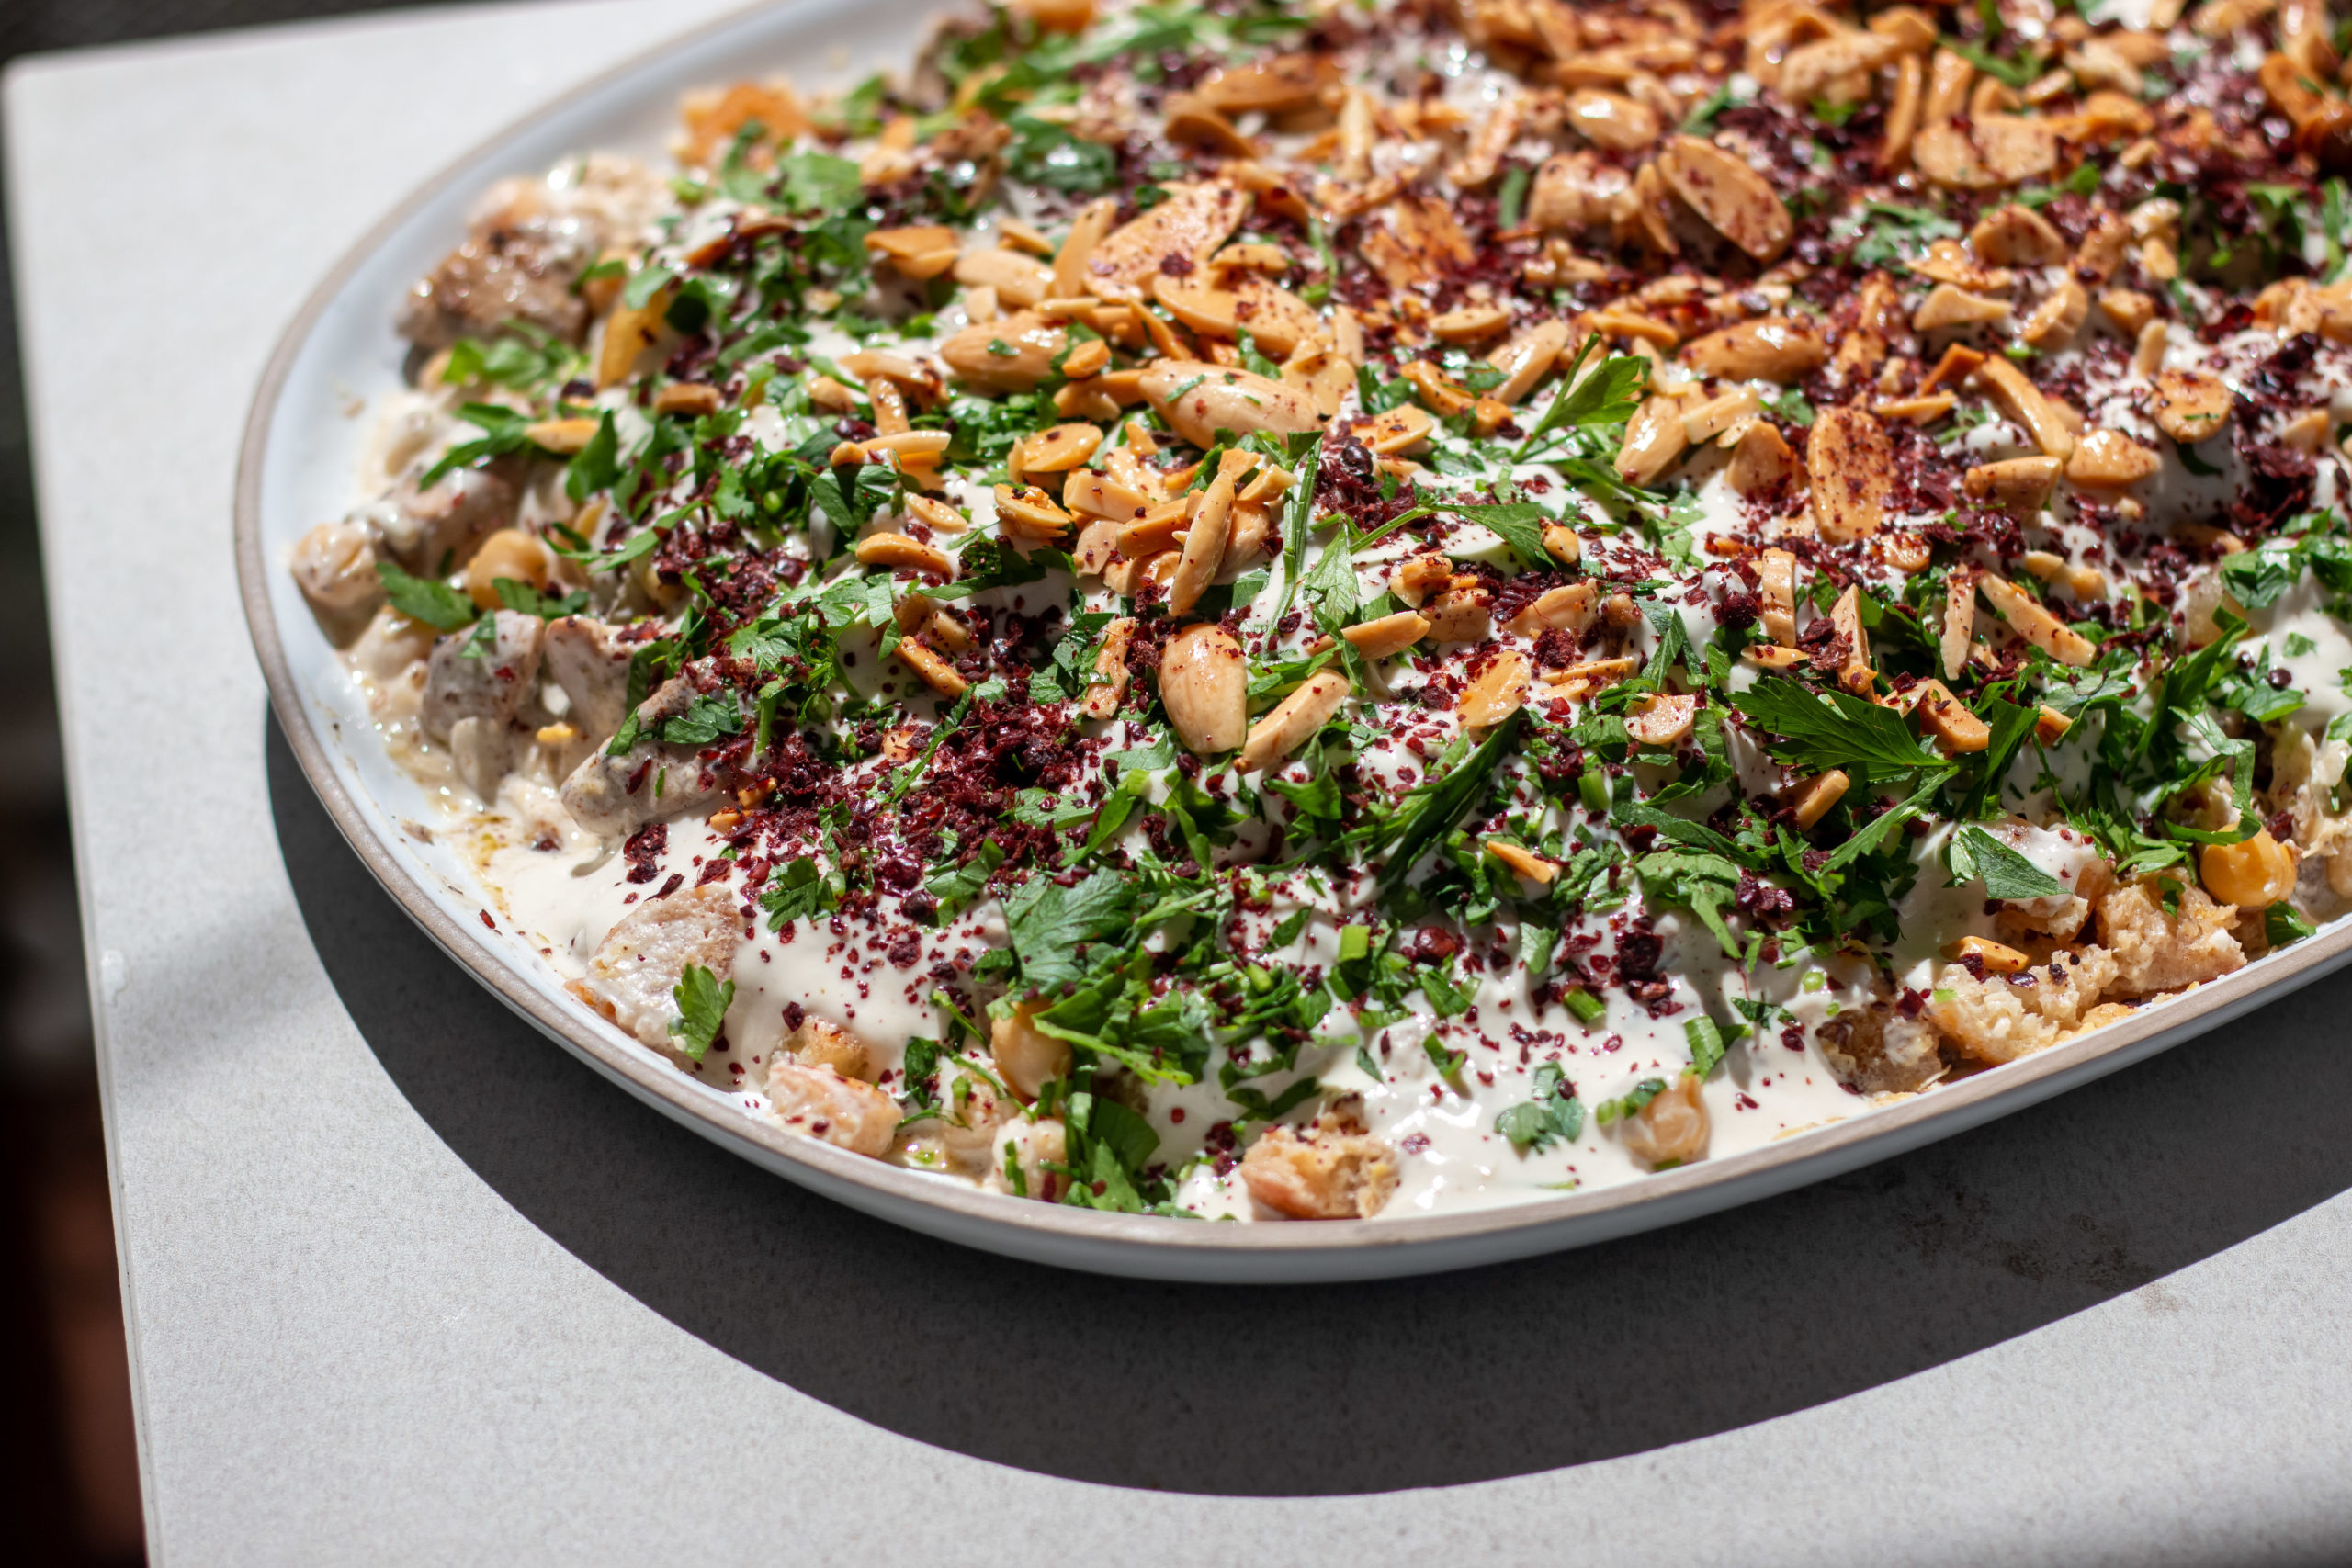 Platter of Palestinian dish chicken fatteh topped with nuts, herbs, and spices Fatte